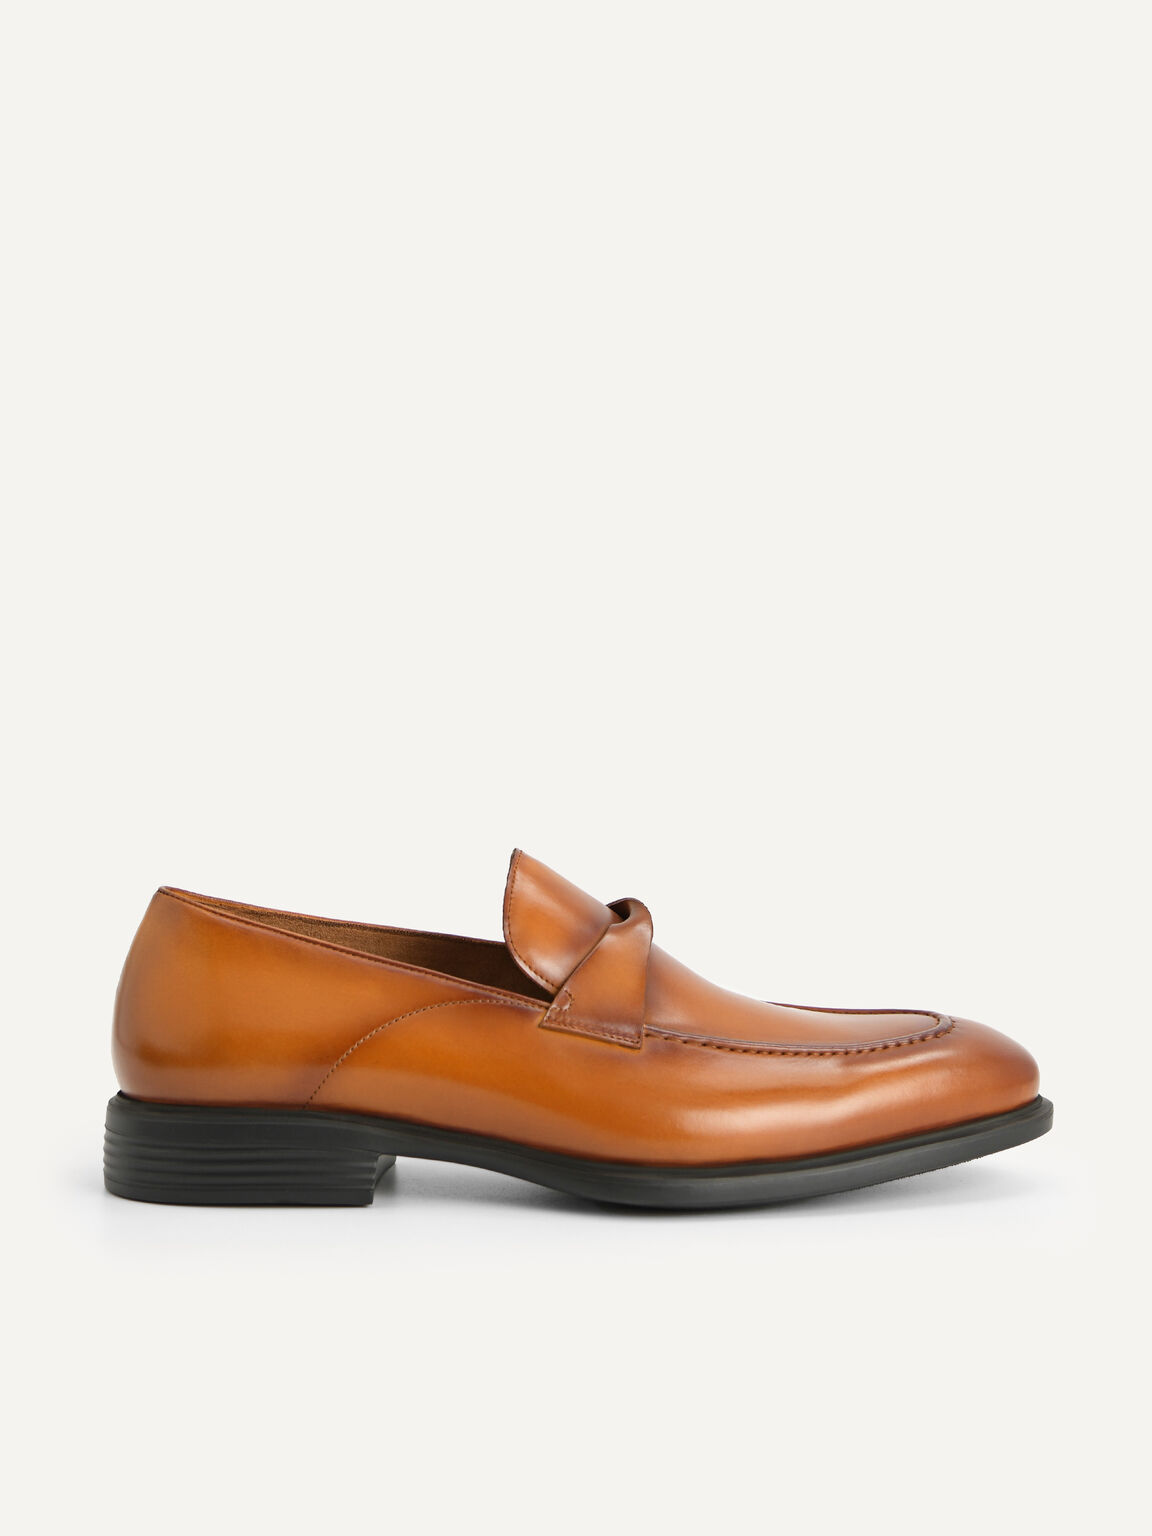 Altitude Leather Loafers, Cognac, hi-res